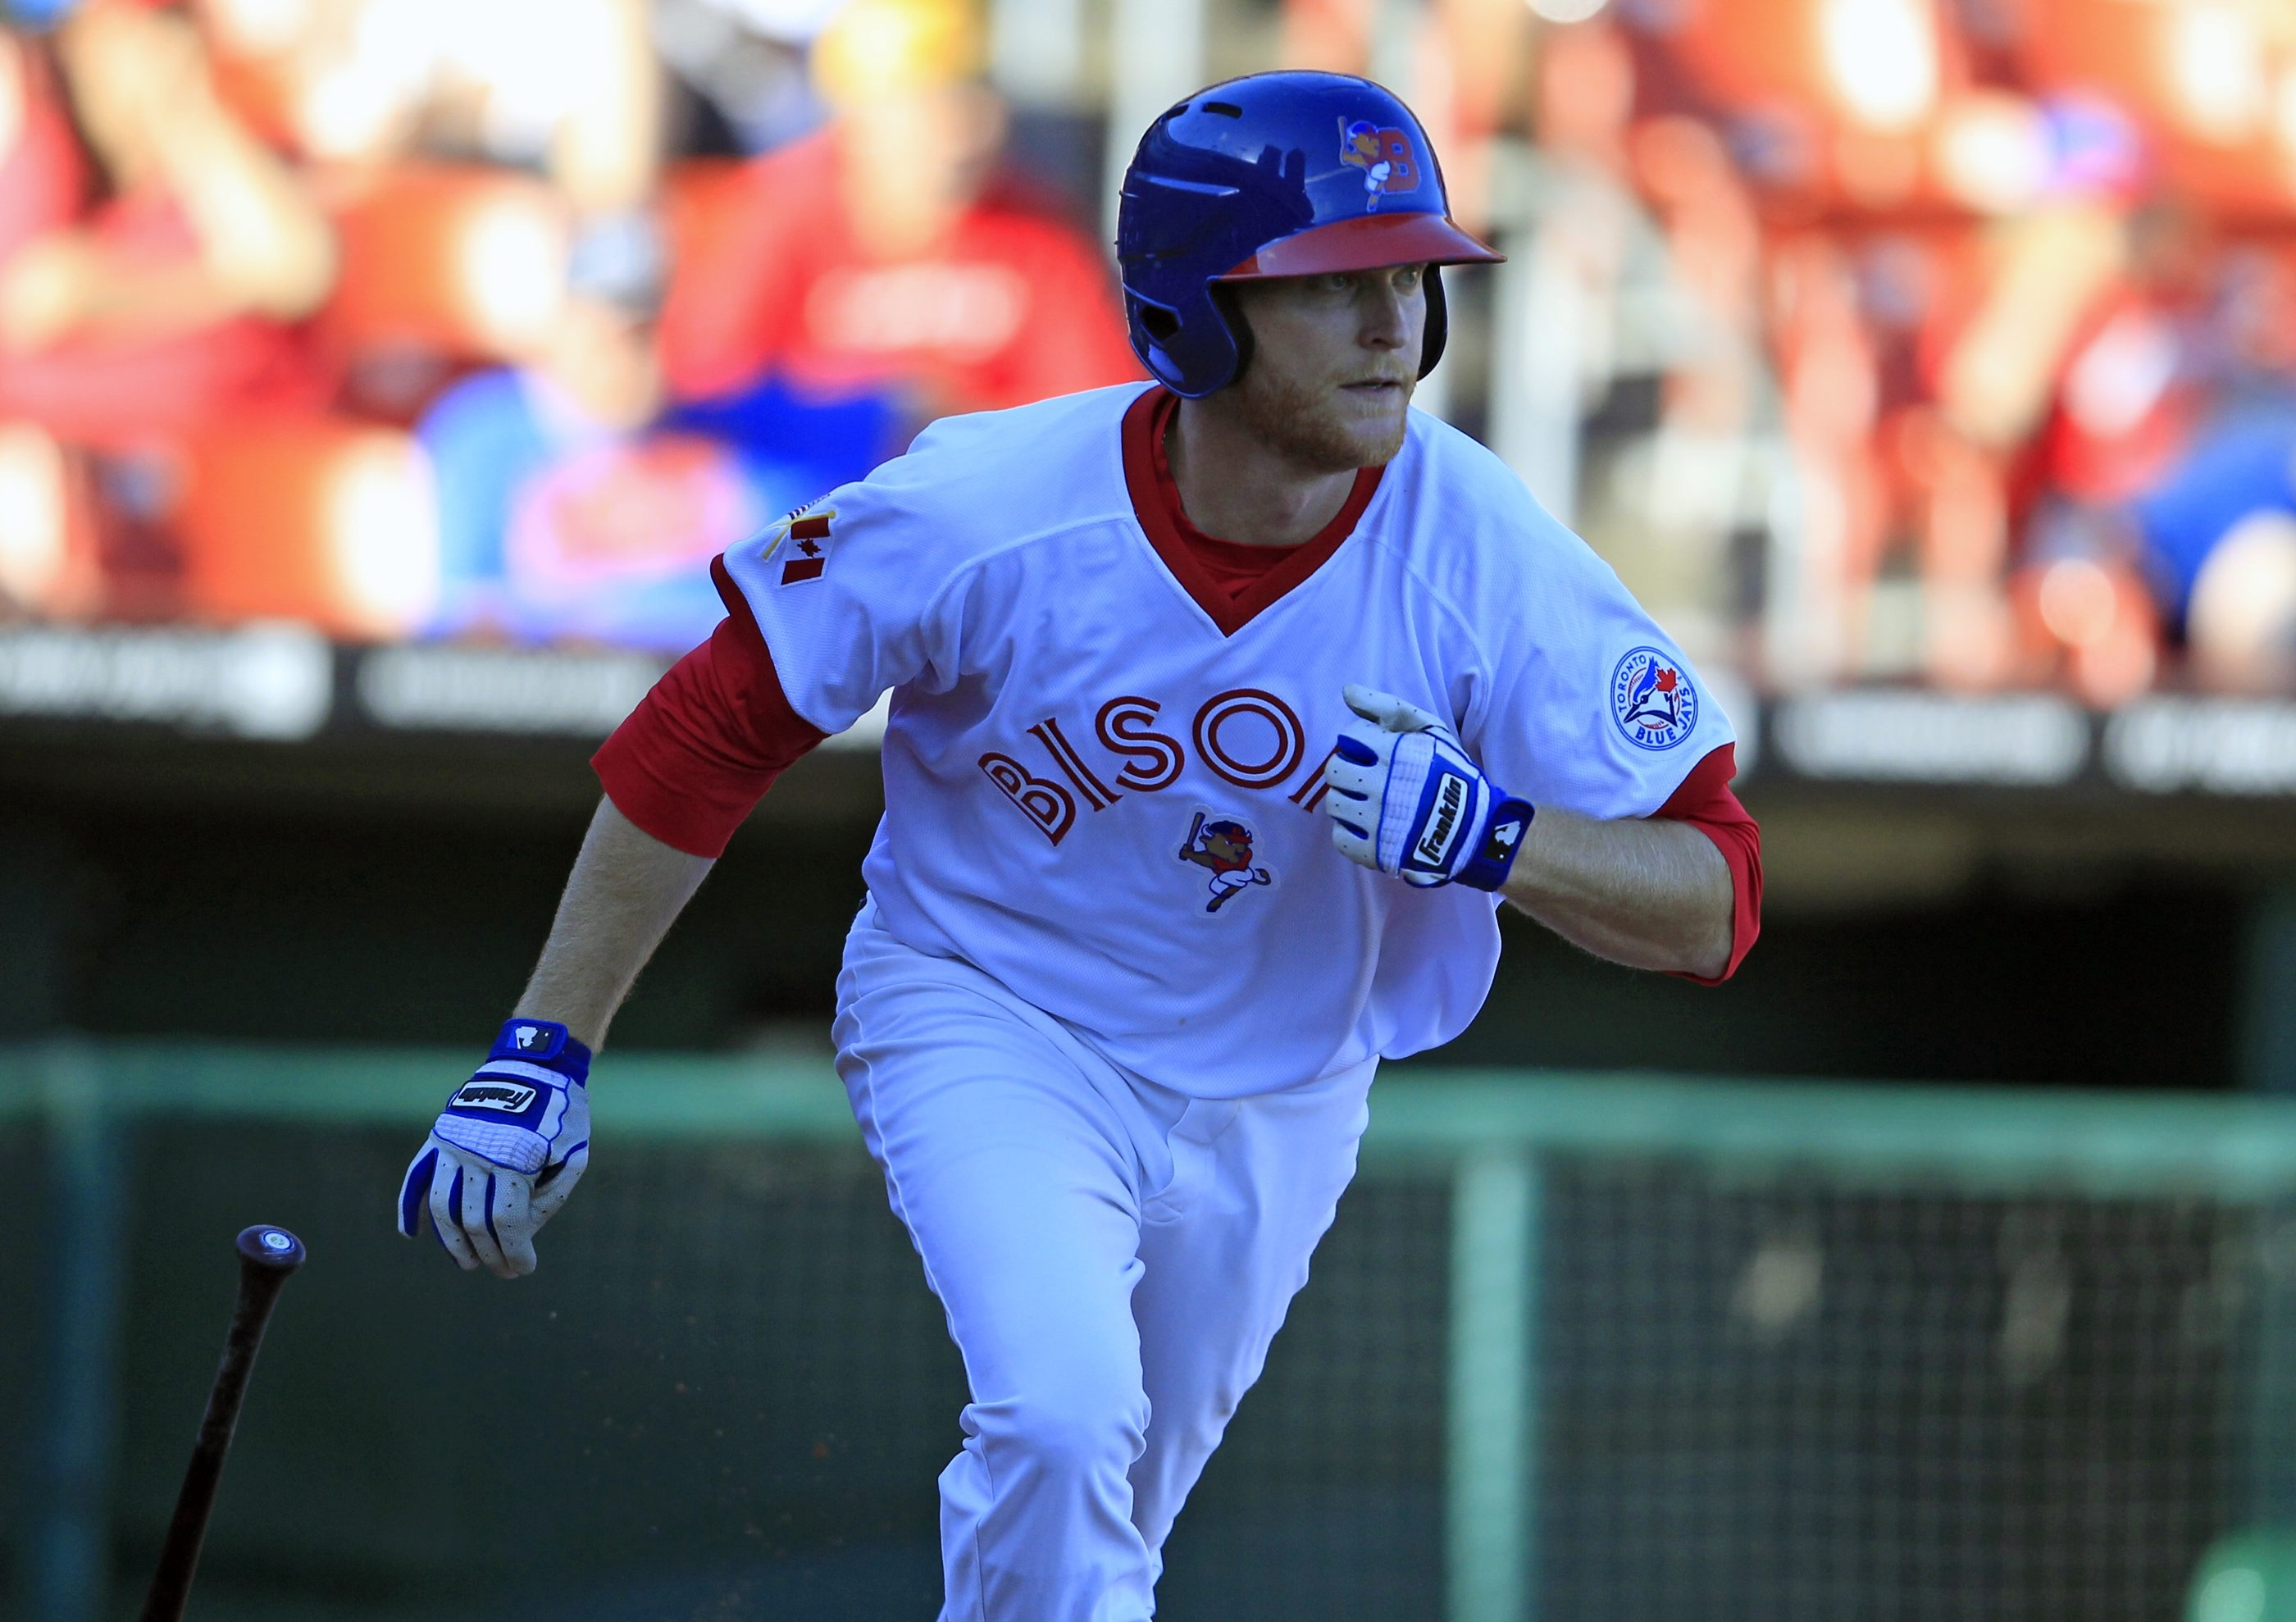 Bisons slugger Dan Johnson has been a threat at the plate throughout the season so far. It's made him the top vote-getter in the election for the International League All-Star Game.